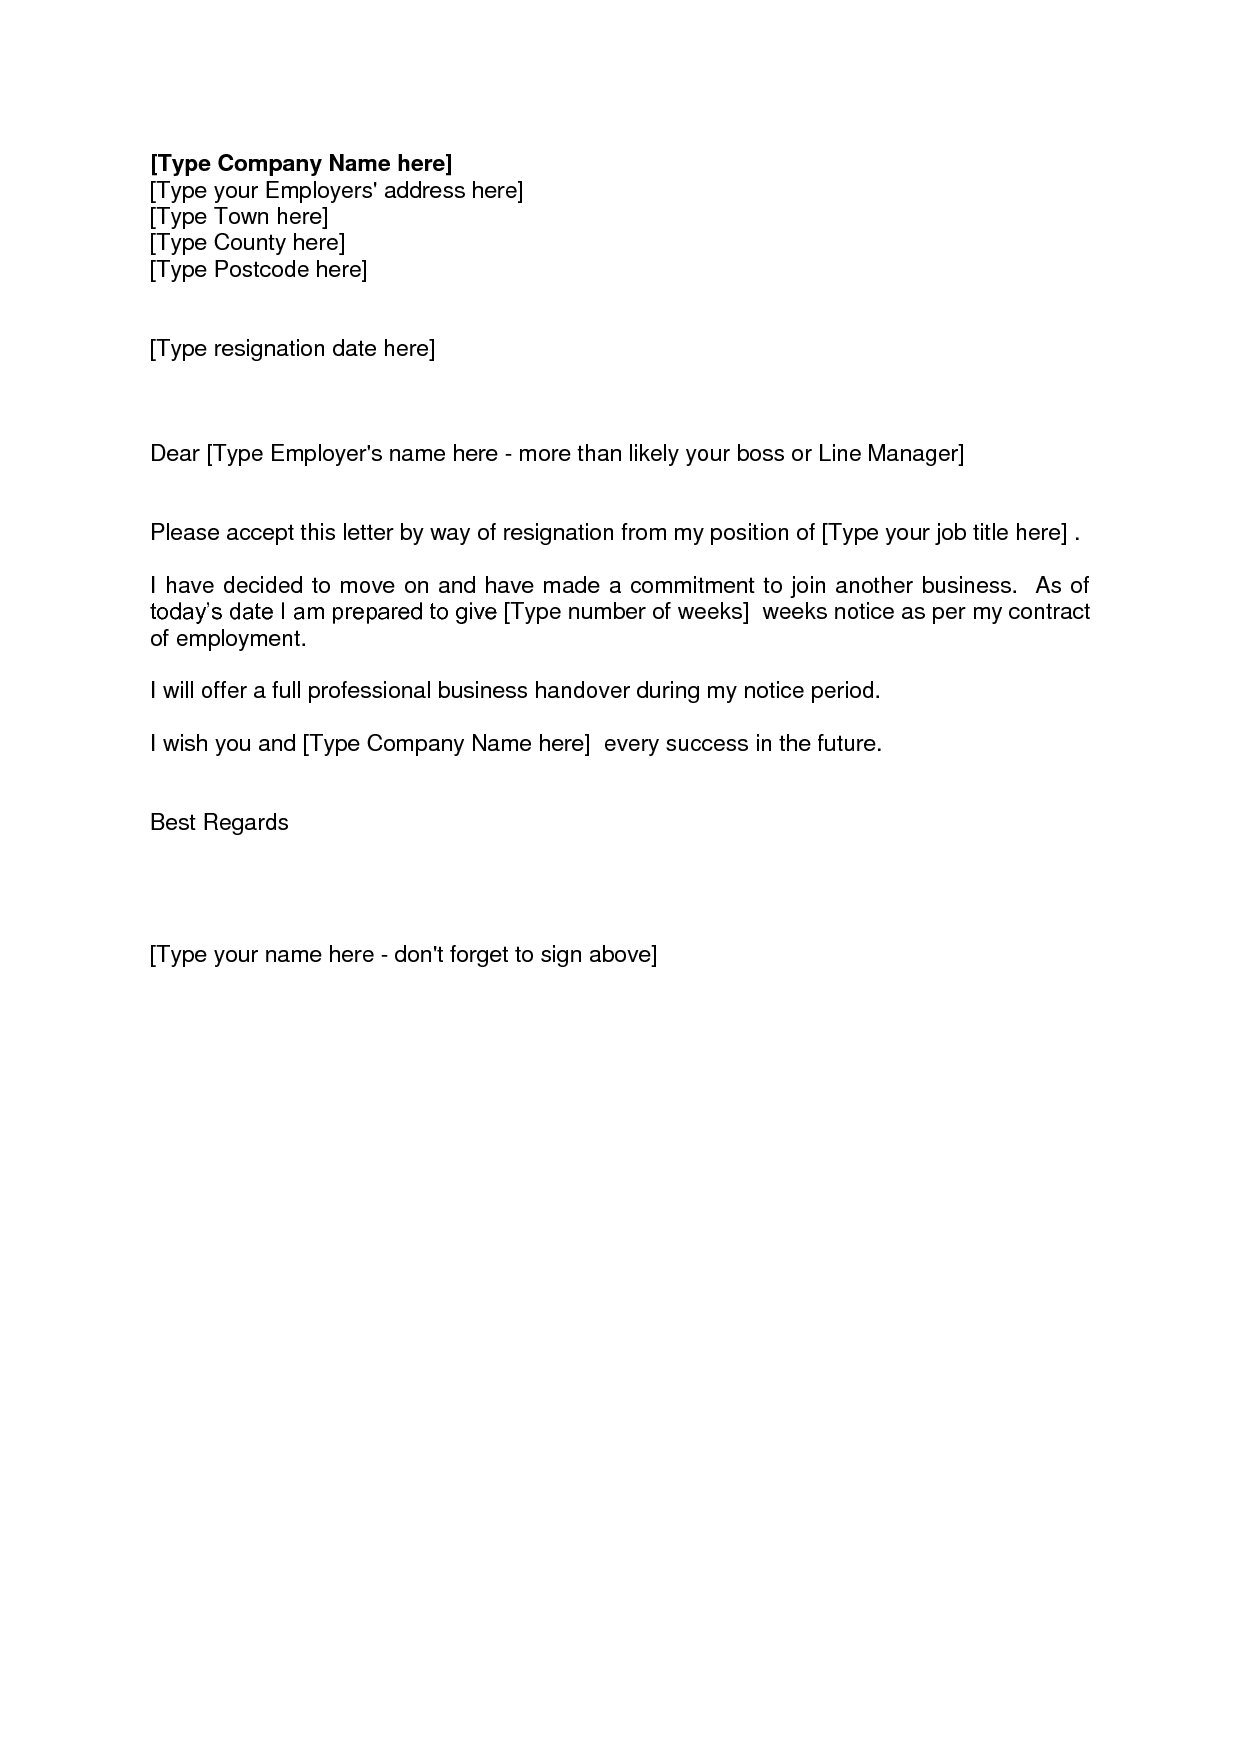 resignation letter template ireland  Letter Of Resignation Weeks Notice Template HDWriting A ..